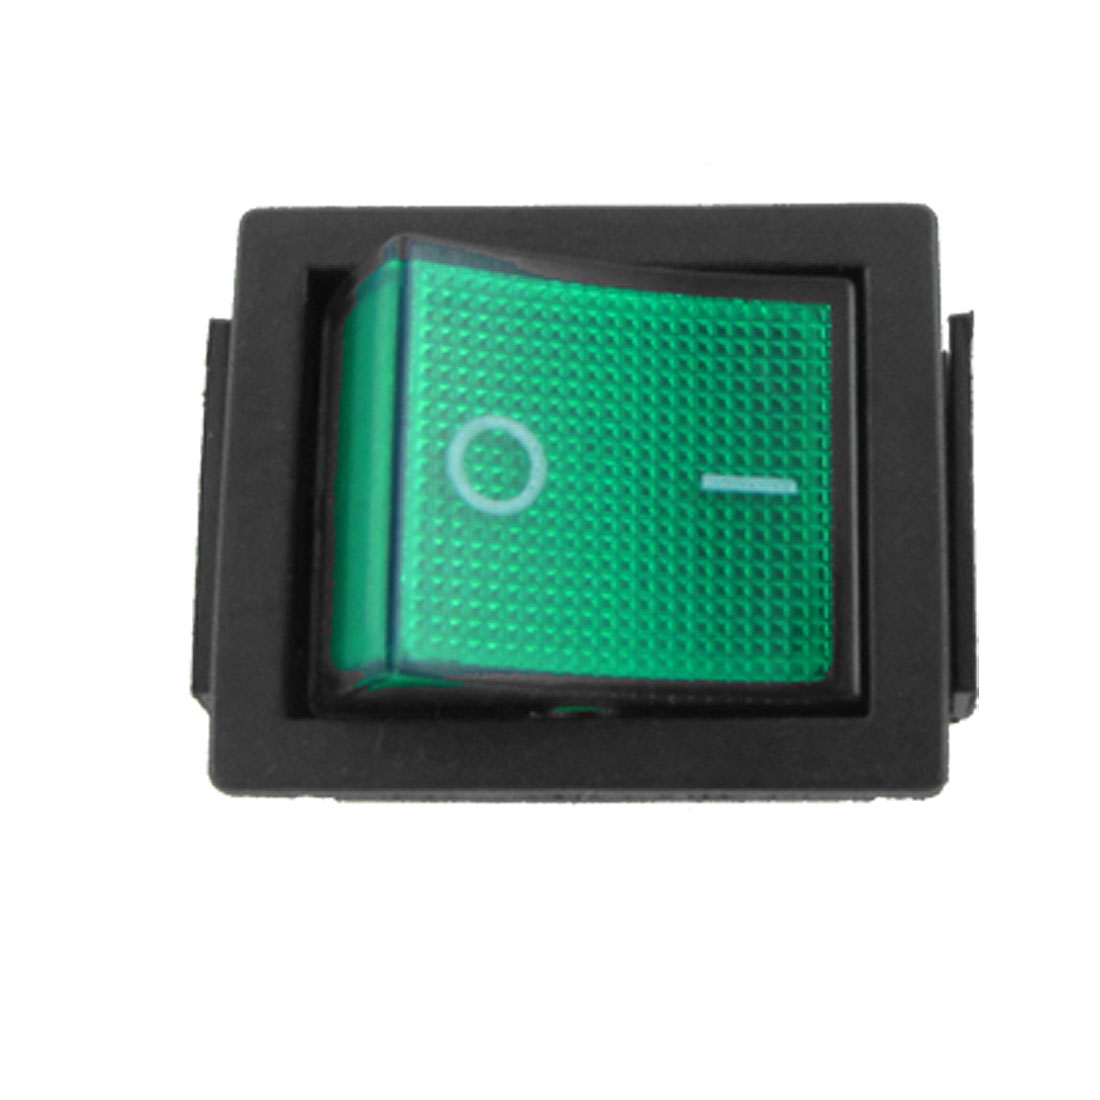 AC 250V 15A Green Light Illuminated 6 Pin DPDT ON/ON Snap in Boat Rocker Switch